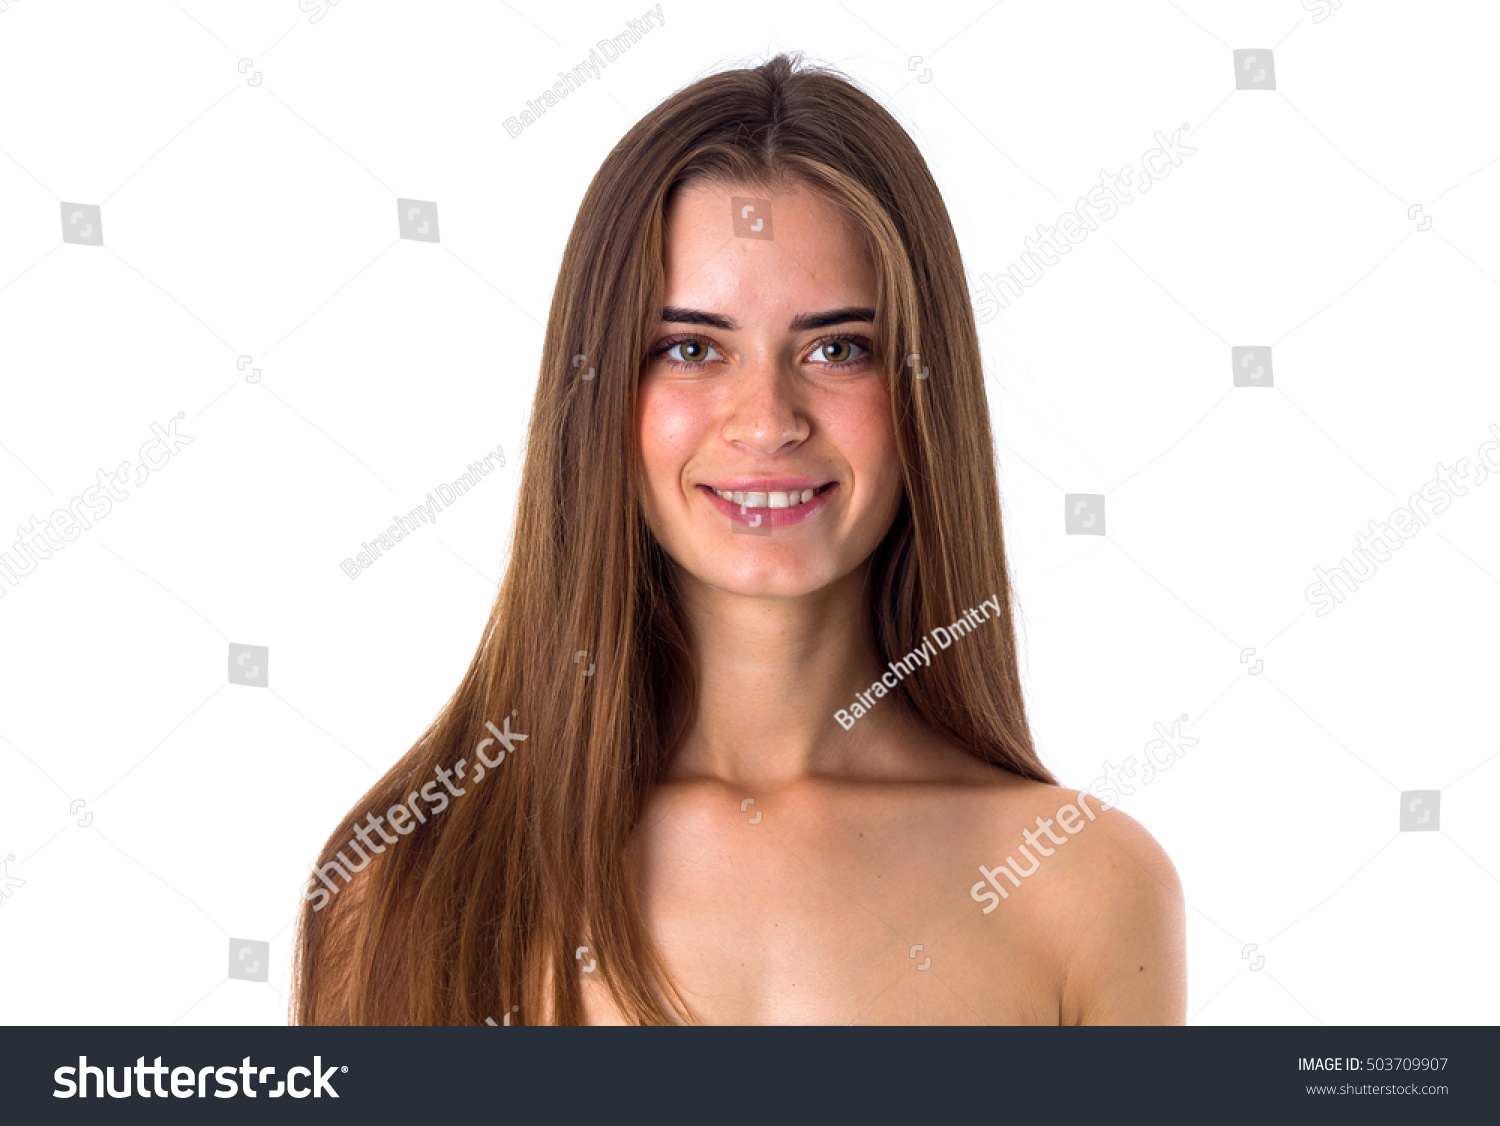 naked woman long hair smiling stock photo (100% legal protection